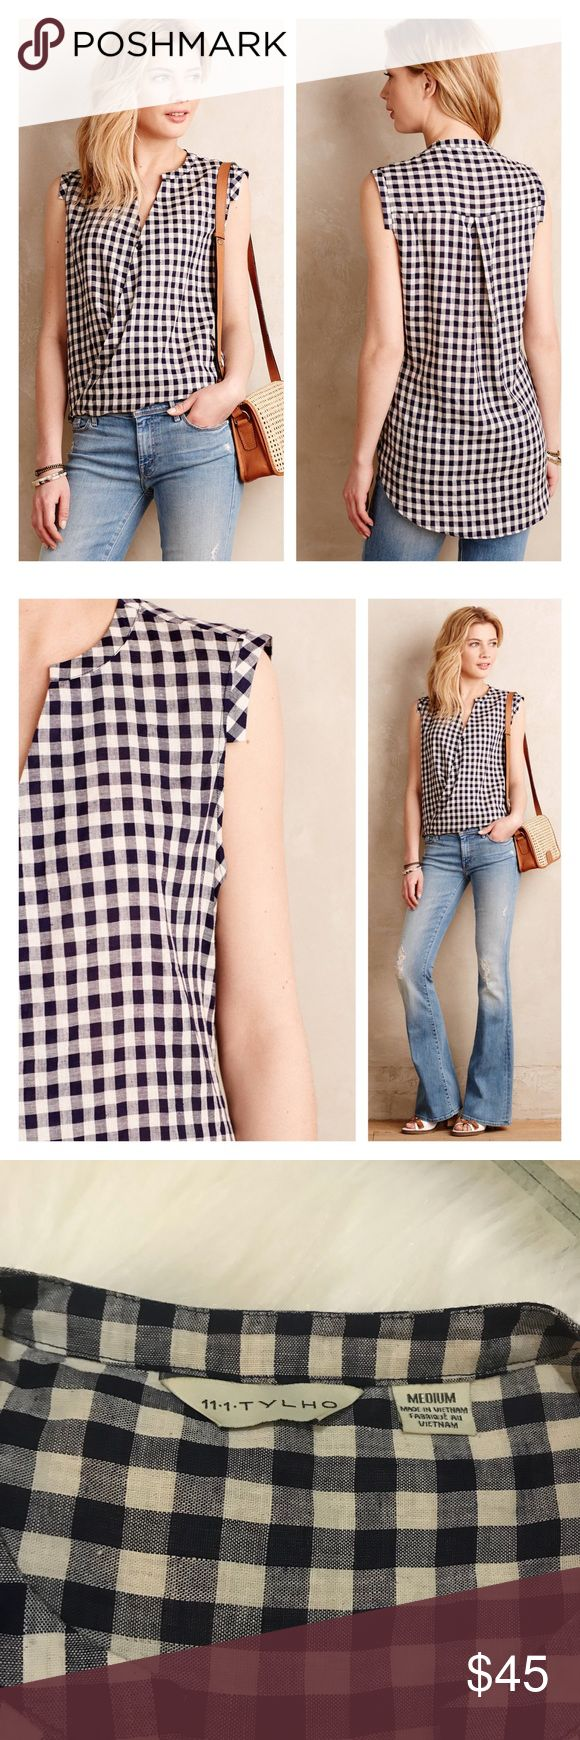 """anthropologie • tylho draped picnic shirt in blue FINAL PRICE! Simply adorable. Gingham pattern. Half mandarin collar with cap sleeves. 50% rayon, 50% linen. UA to UA 21"""". Front length 25"""", back length about 30"""". Offers are welcome. Anthropologie Tops Blouses"""